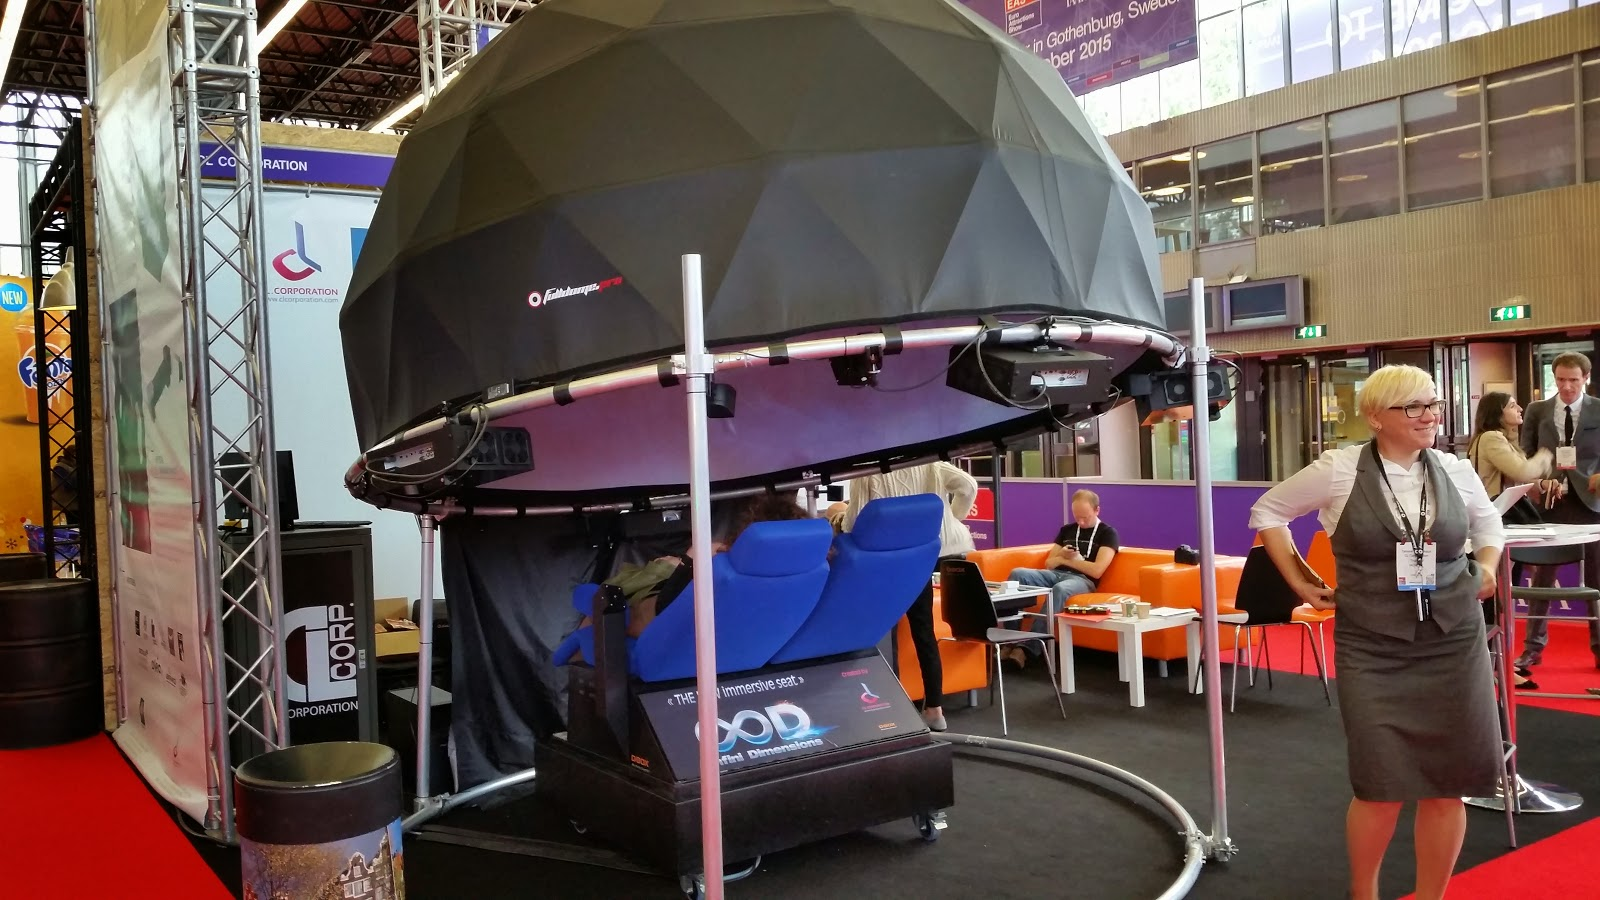 Immersive systems at Euro Attractions Show